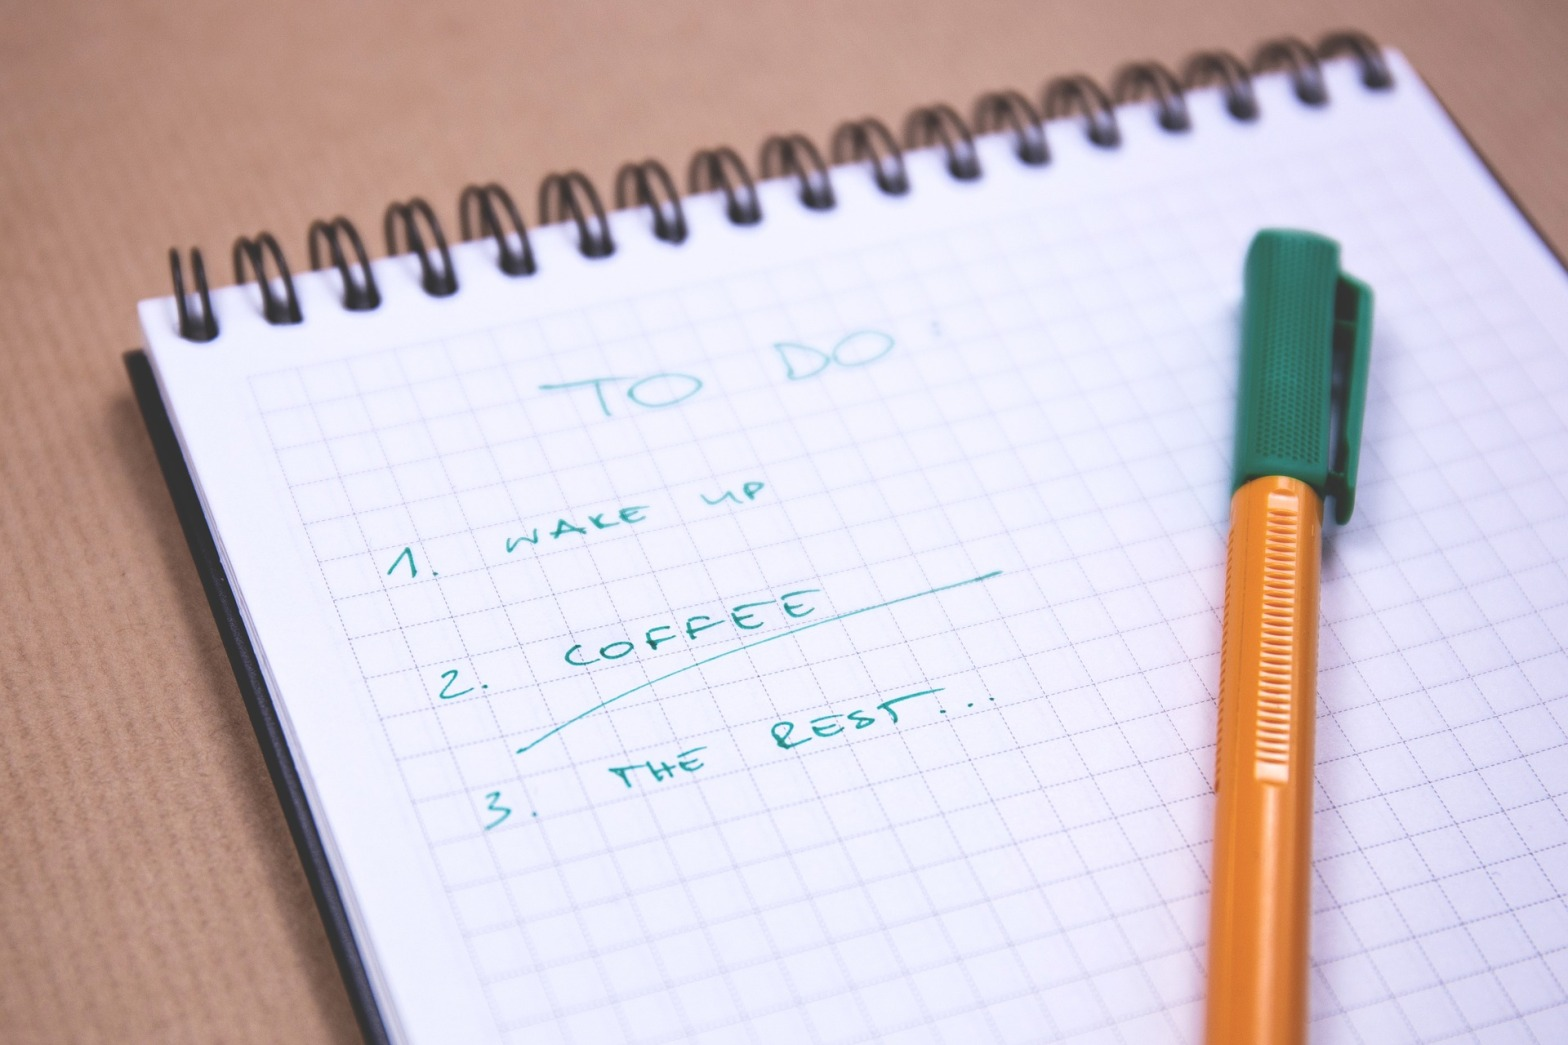 To Do List: Wake up, Coffee, The Rest...